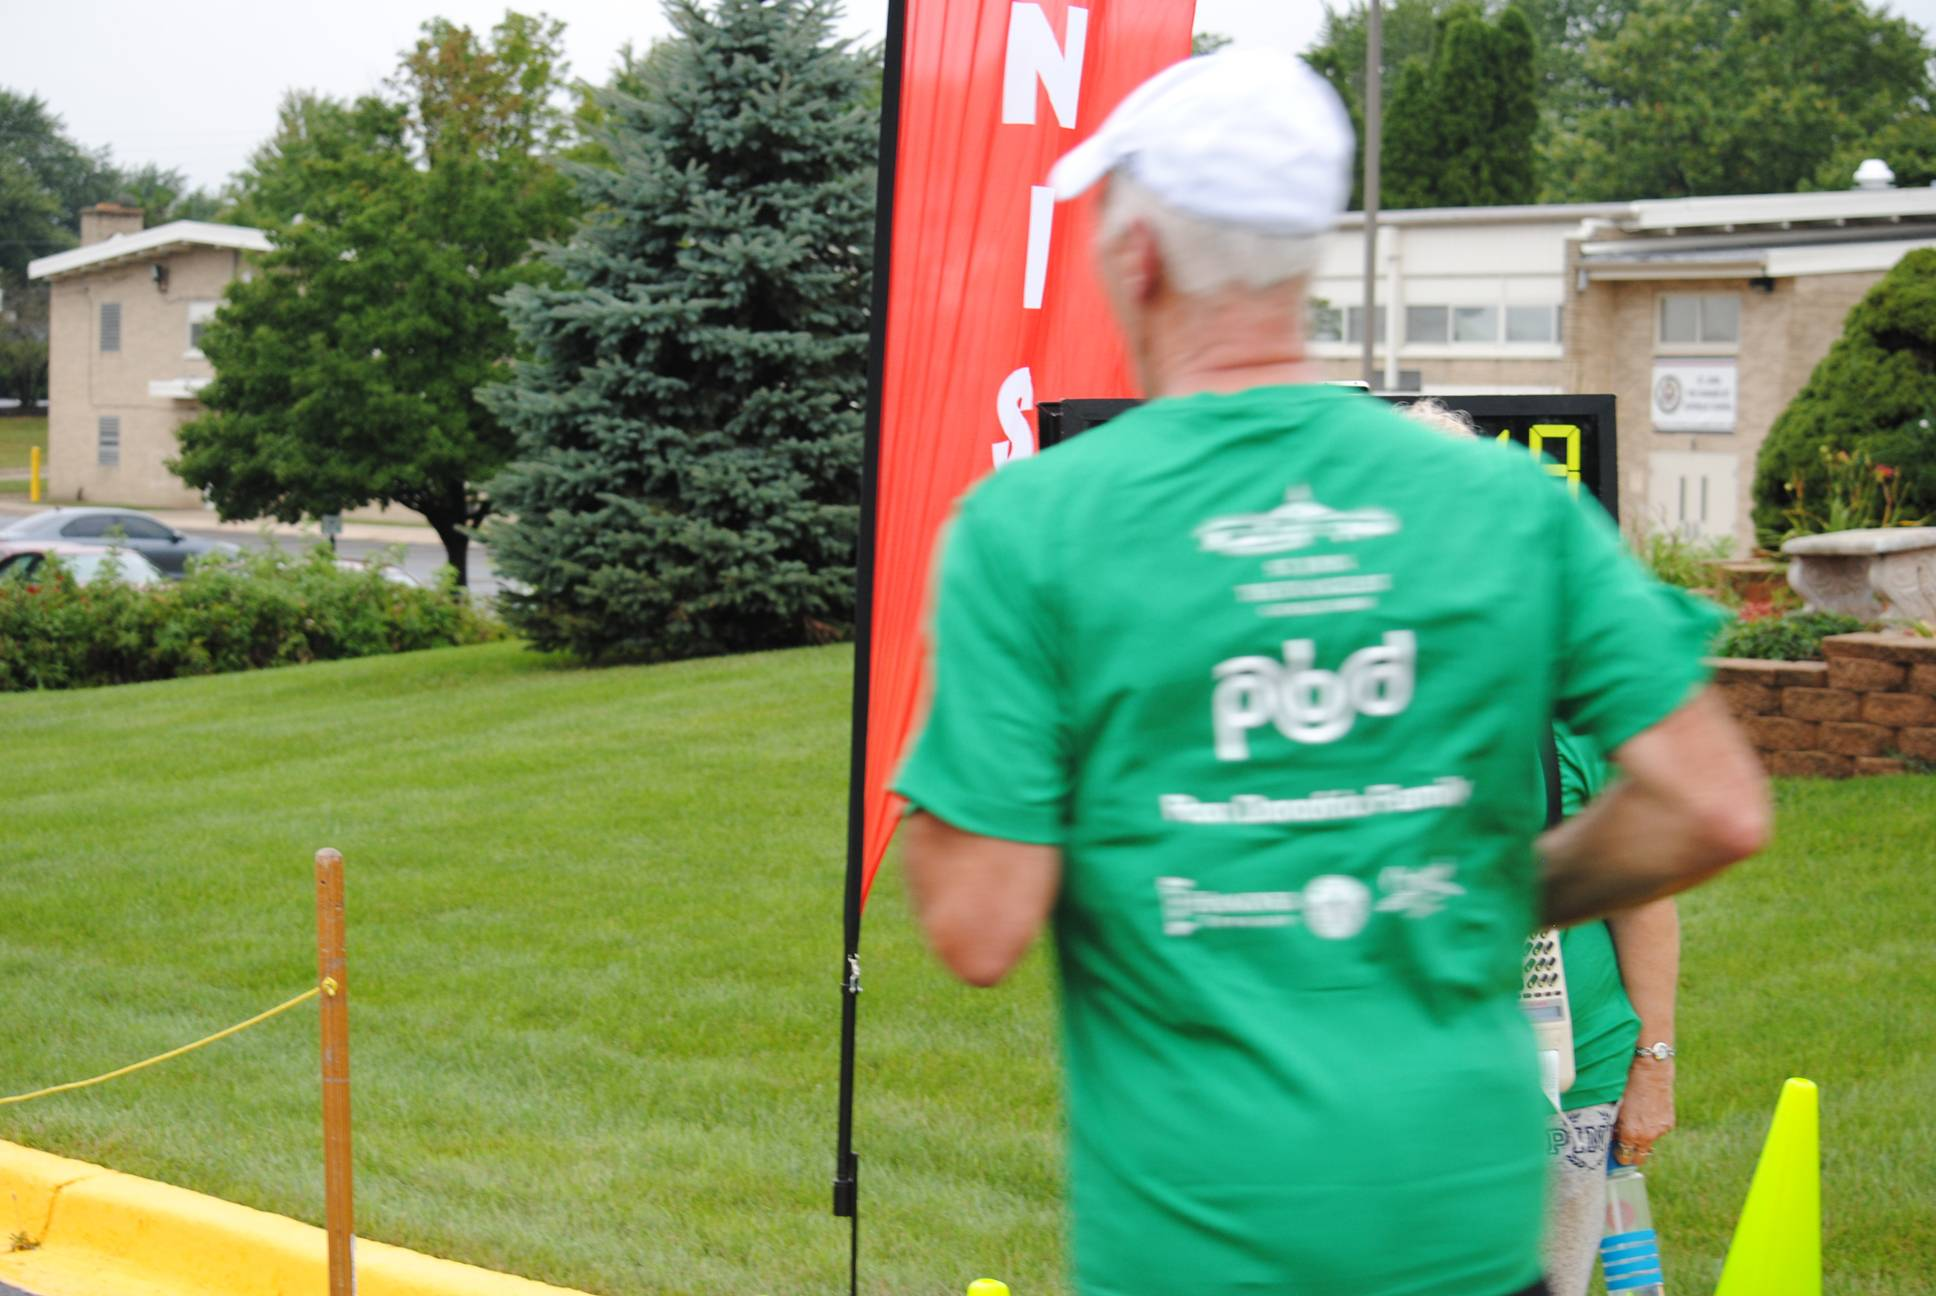 Race Director, Jim Kaltinger, crossing the finish line in 2016 Knights Challenge 5K - St. John the Evangelist Church, Streamwood, IL. 8/27/16Gary Pappin